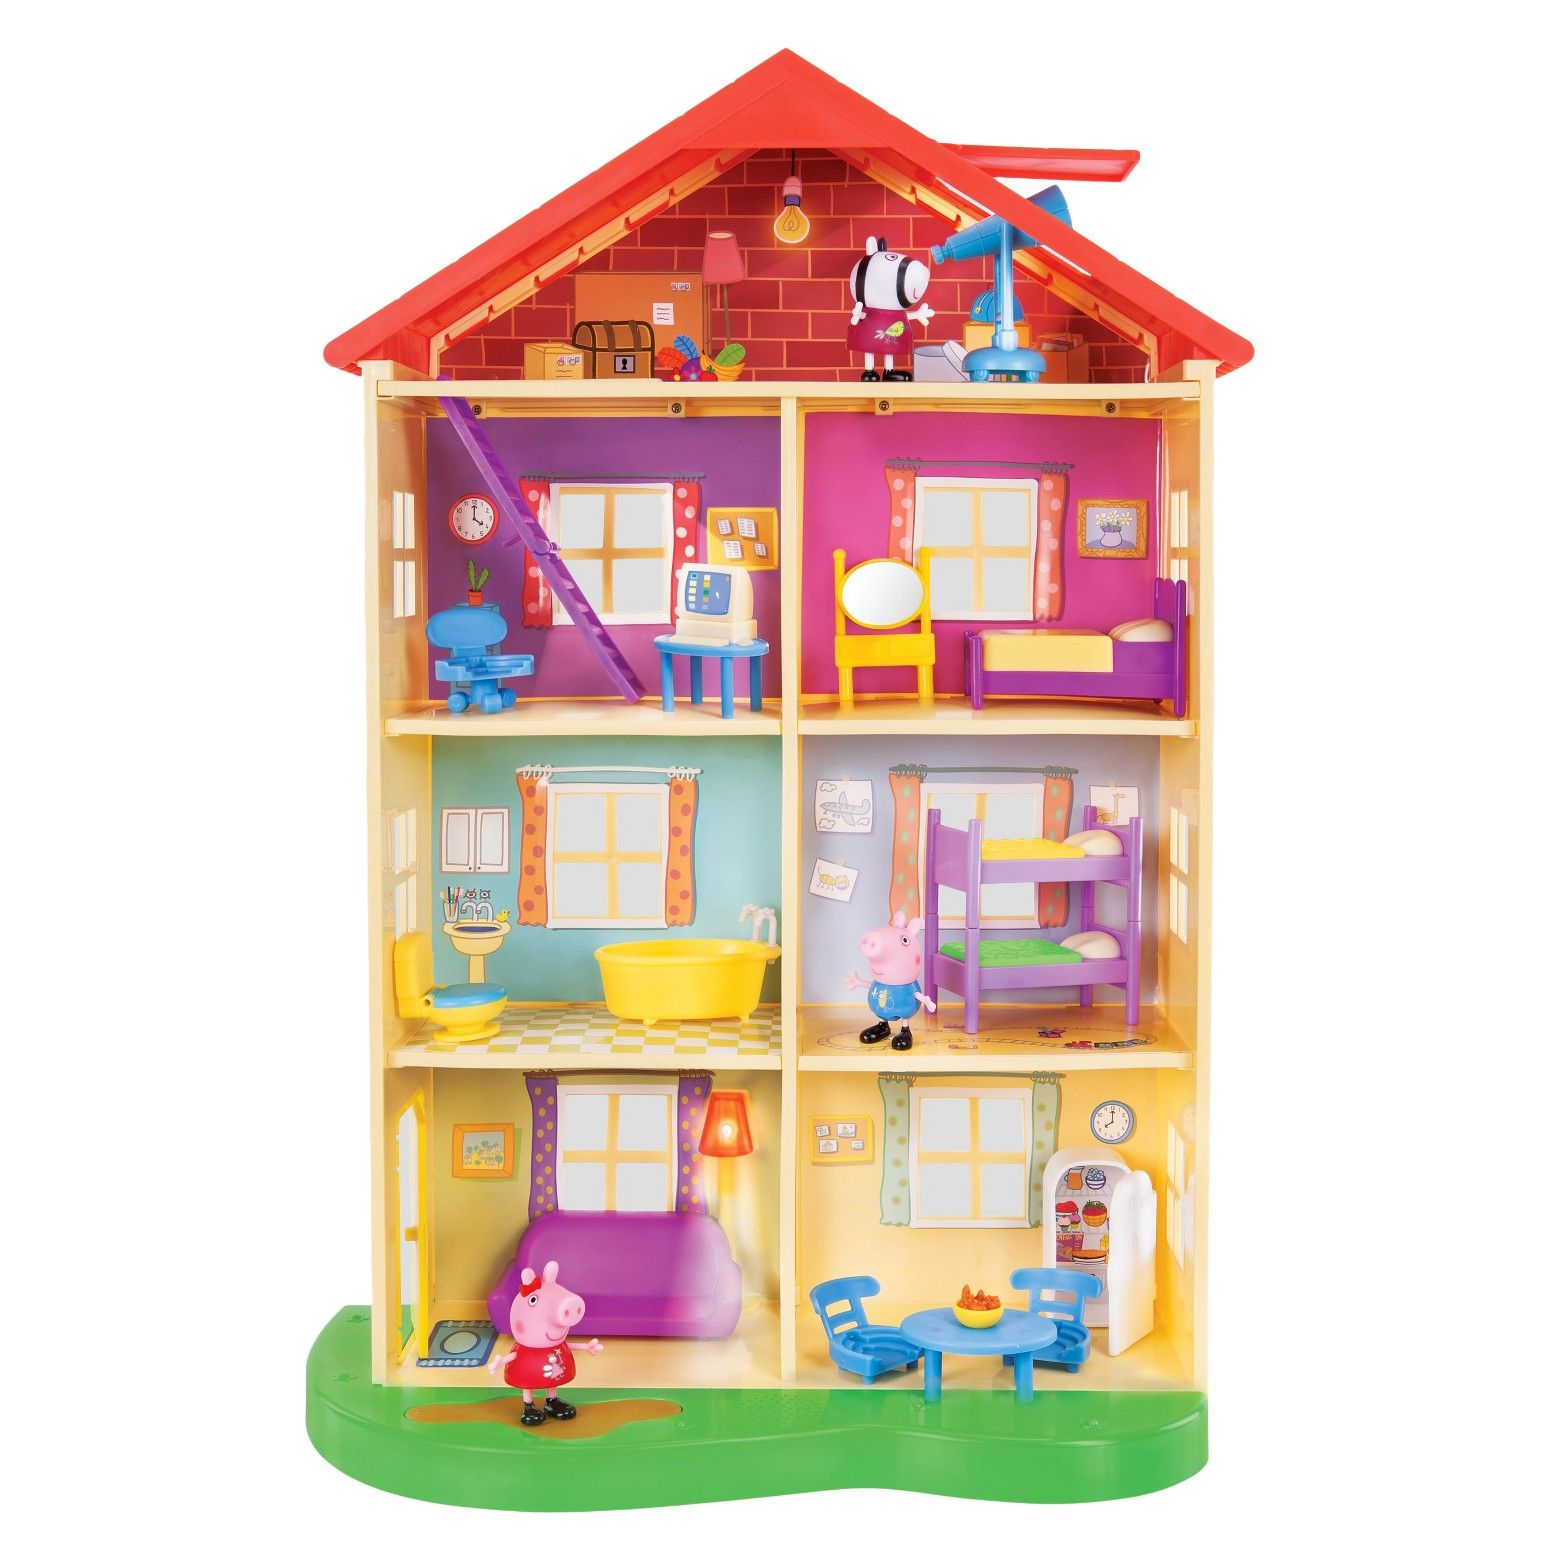 Peppa Pig Family Home Playset With Lights And Sounds Peppa Pig Toys Peppa Pig House Peppa Pig Family [ 1560 x 1560 Pixel ]